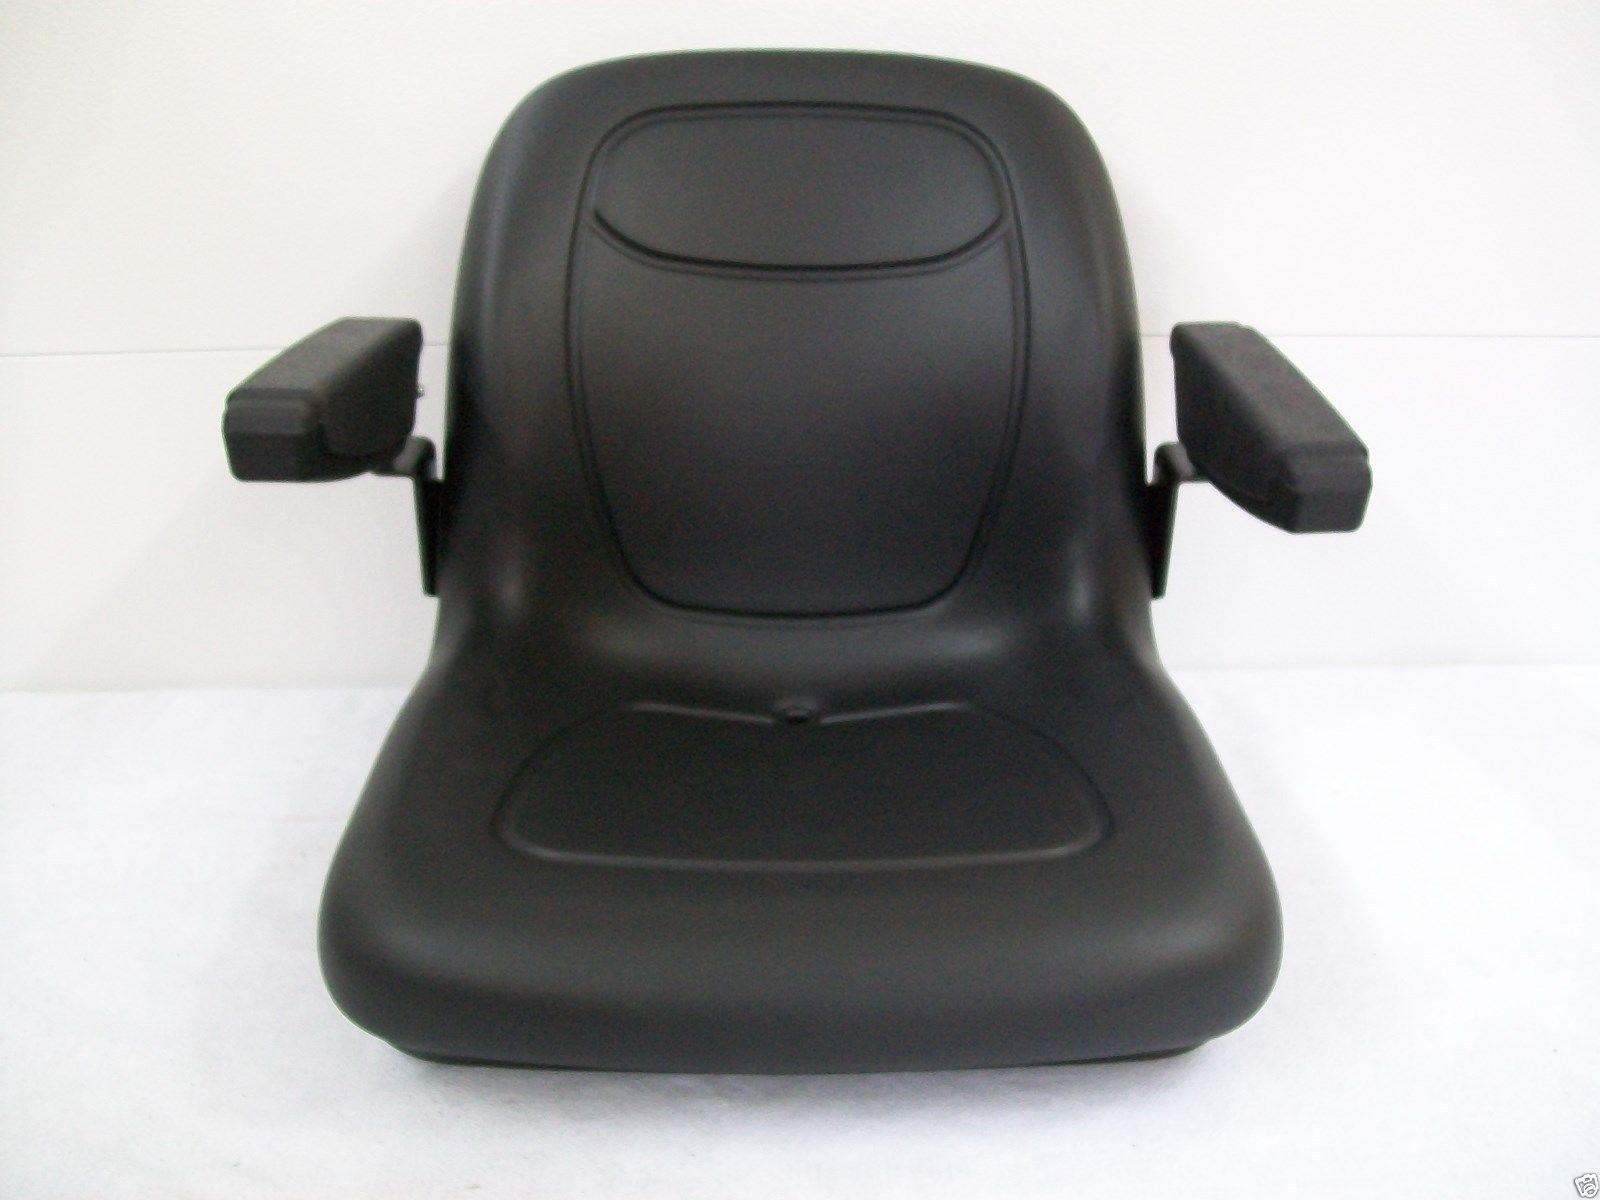 BLACK SEAT FIT KUBOTA B7410 B7510 B7610 B2710 B2910 COMPACT TRACTOR GG 171917610807 3 black seat fit kubota b7410, b7510, b7610, b2710, b2910 compact kubota b7510 wiring diagram at readyjetset.co